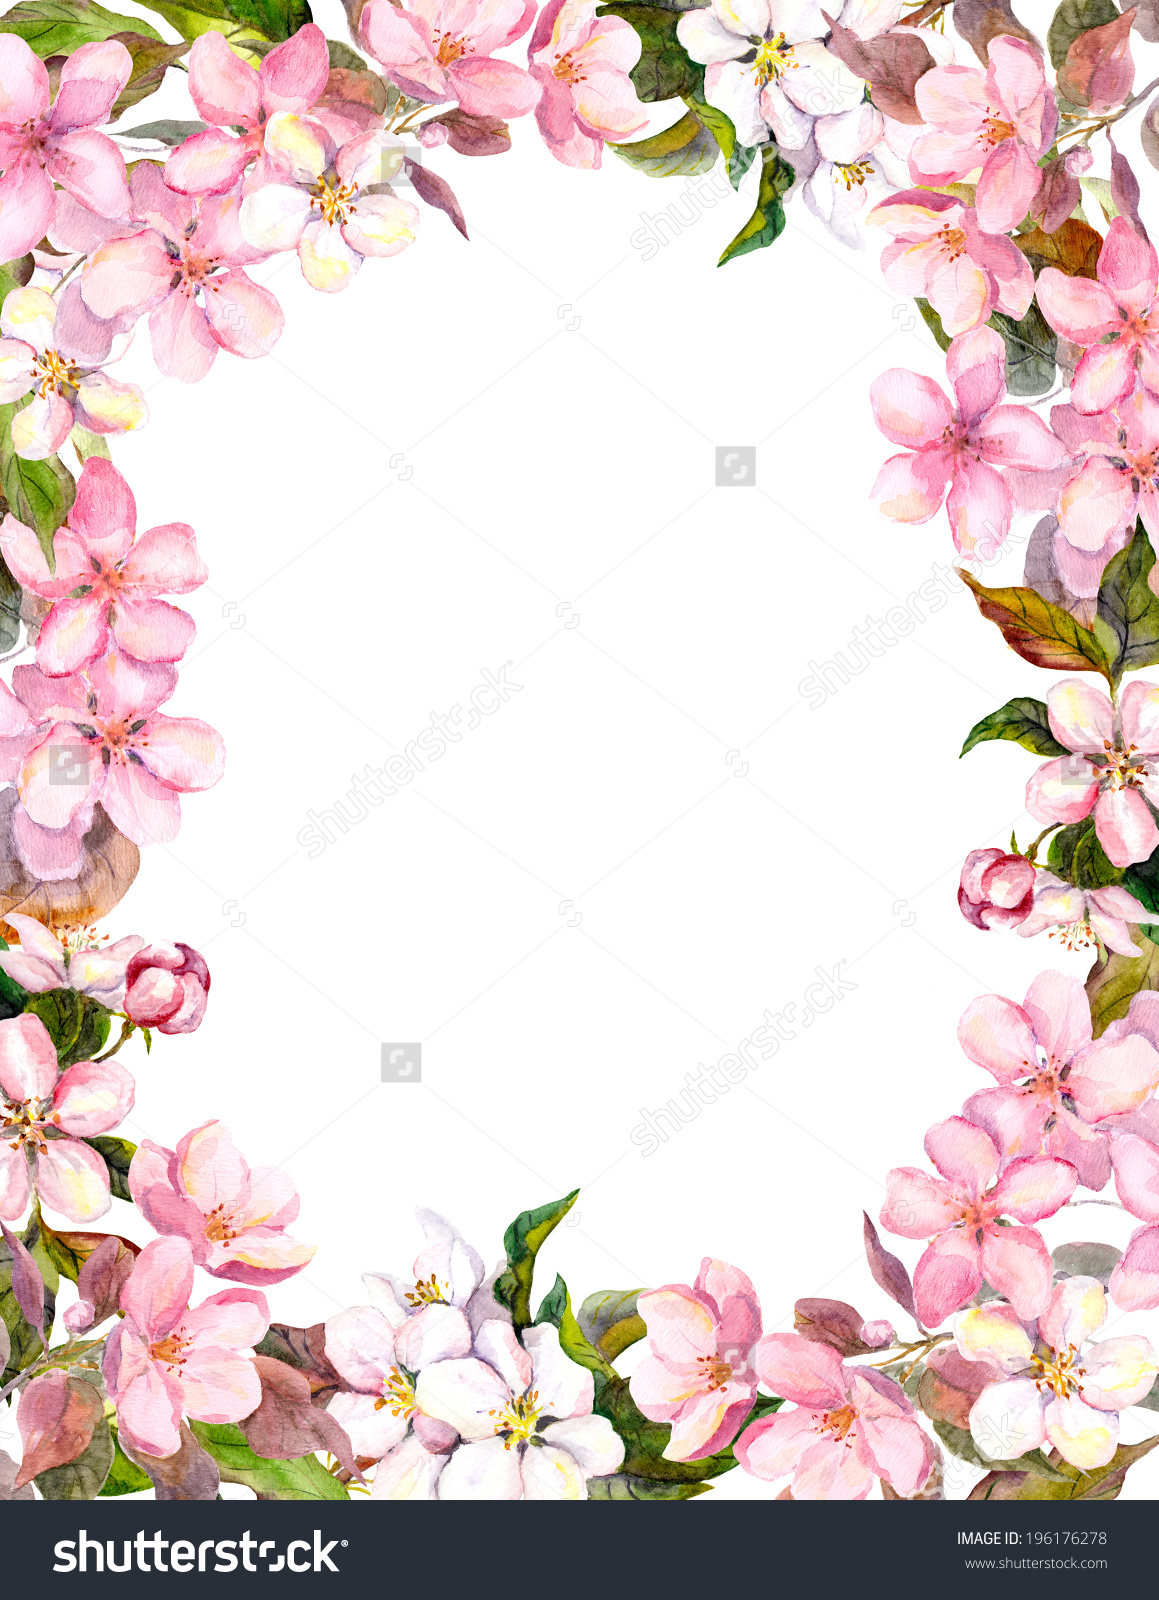 Free Download Floral Border For Shabby Background Watercolor Stock